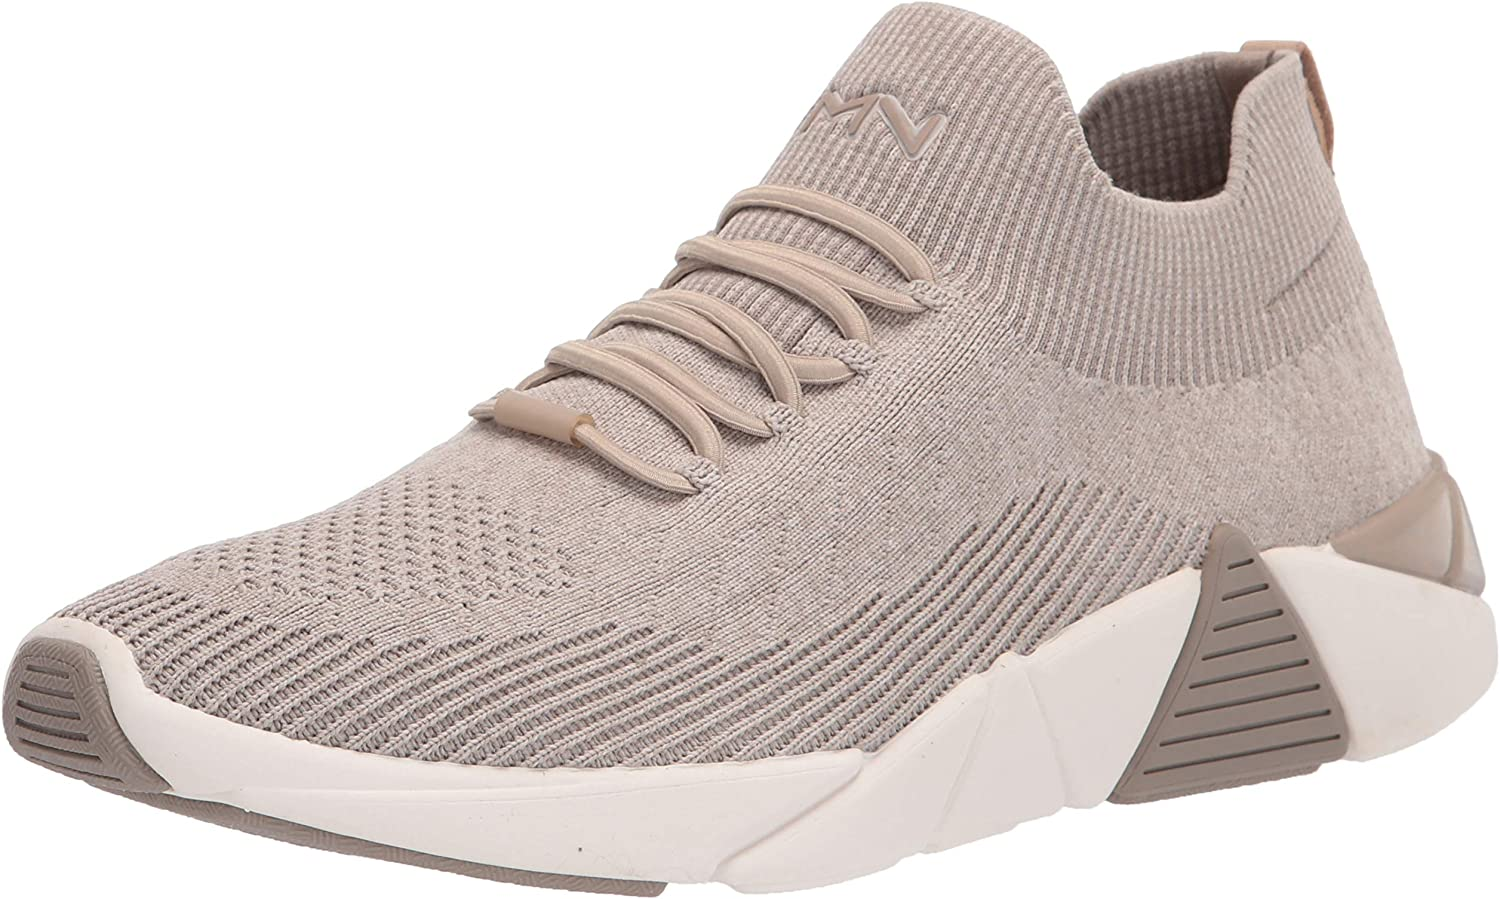 Mark Nason Tampa Mall Women's Sneaker A-line-Pointe New product! New type